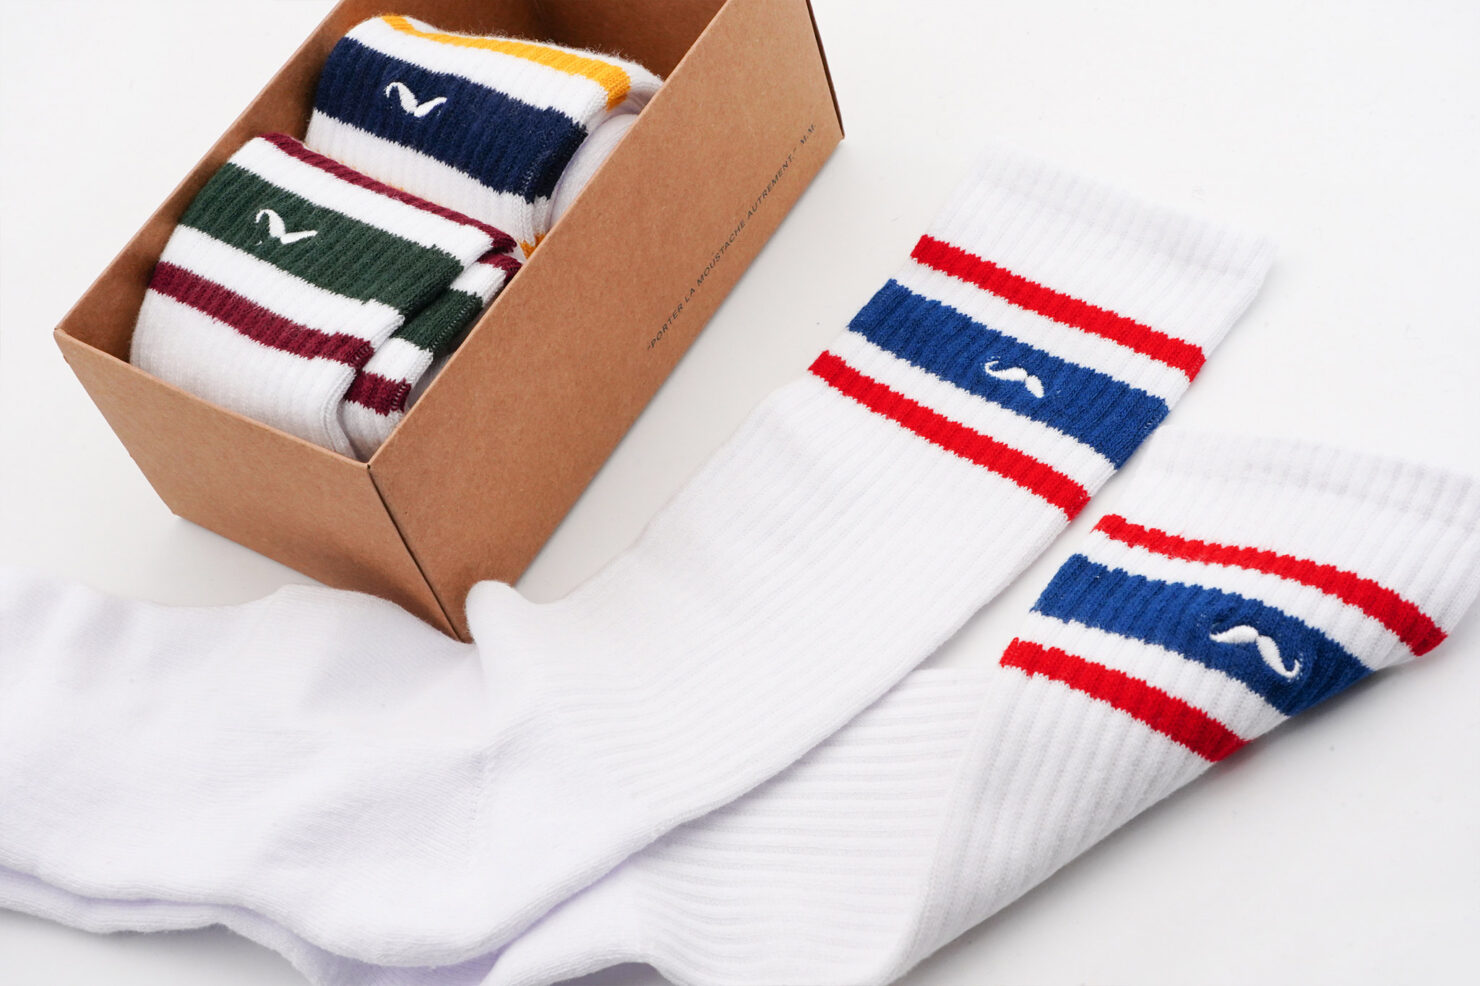 PACK OF 3 SOCKS - MAN SPORT 1 - M. MOUSTACHE